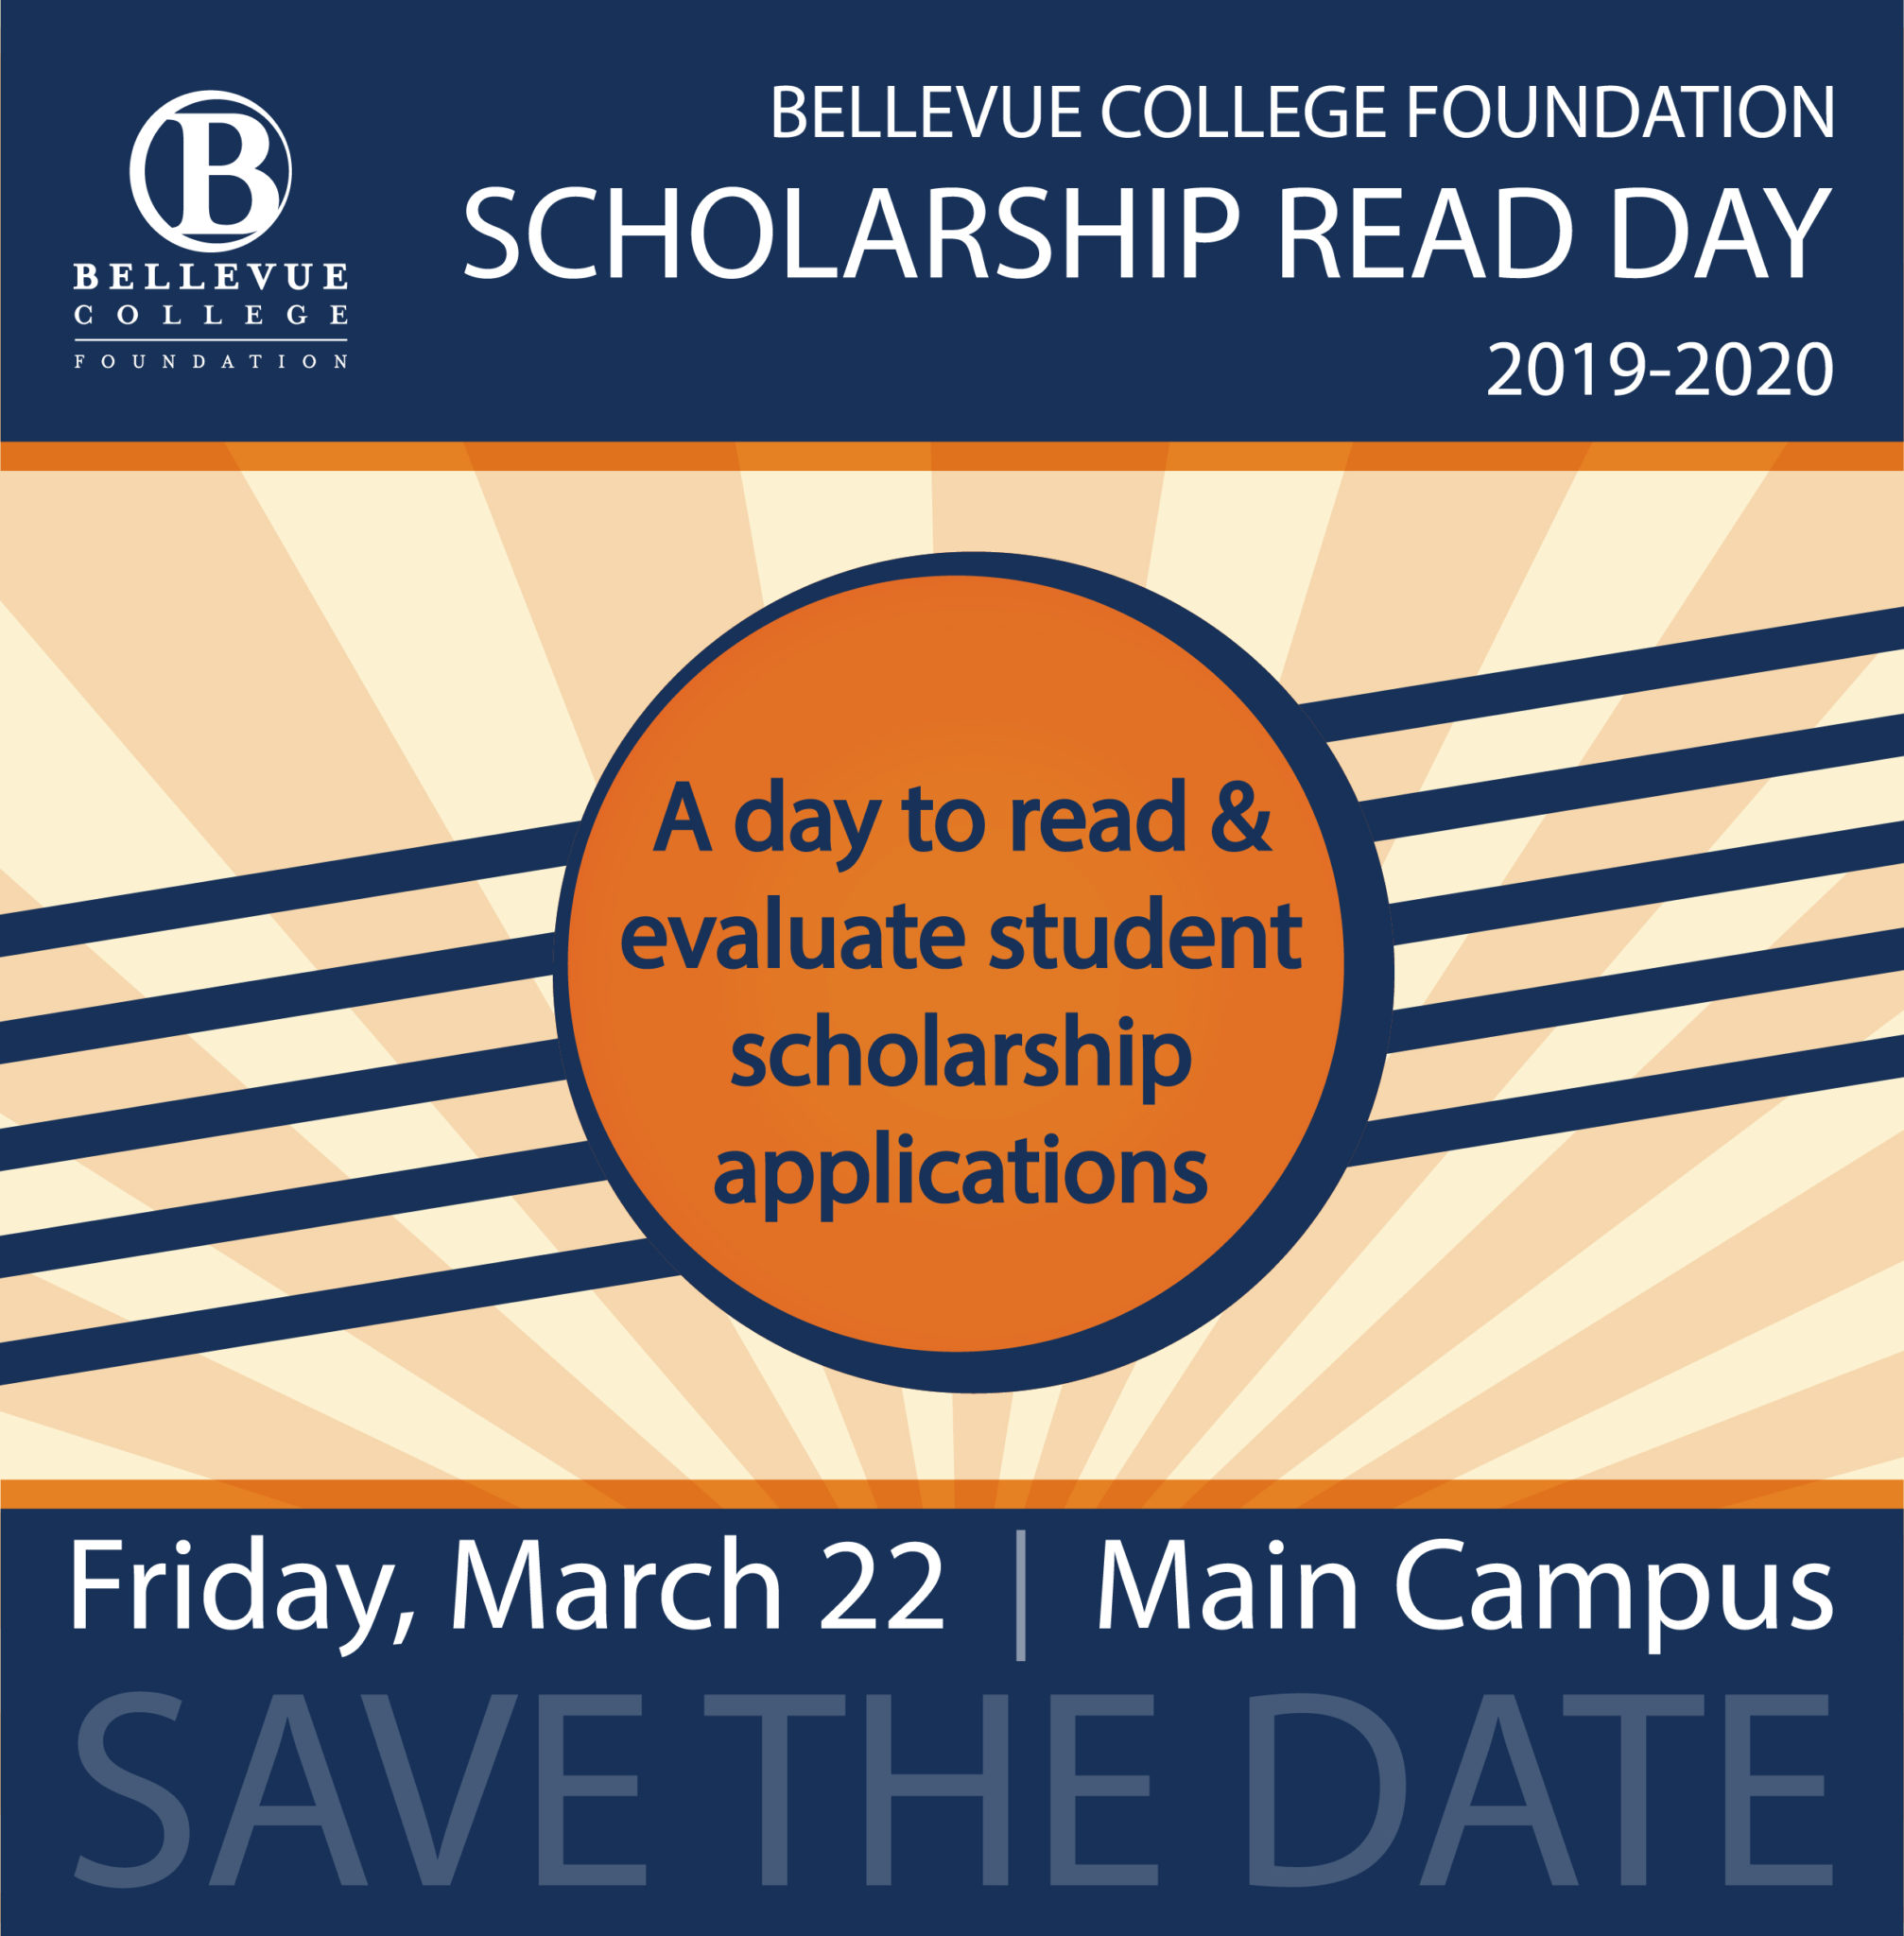 BCF Reads 2019 Scholarship Read Day event